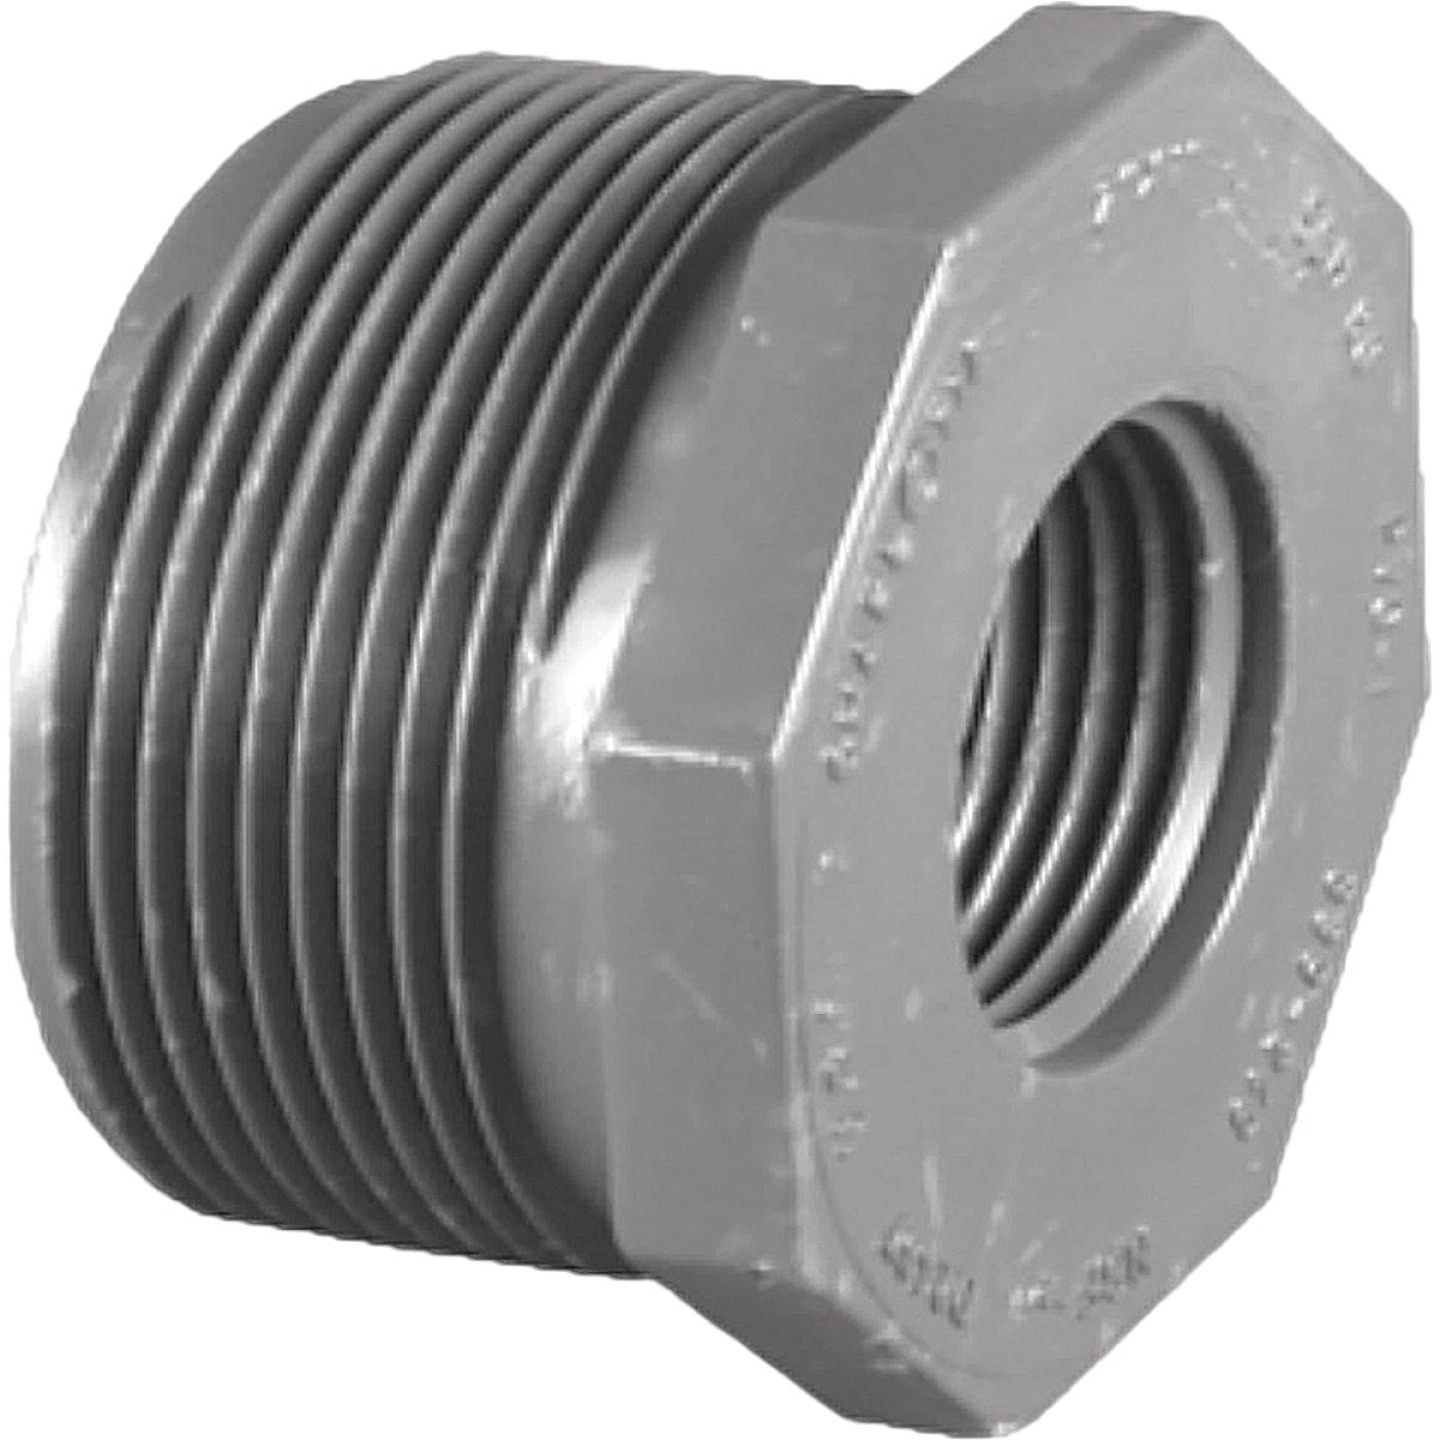 Charlotte Pipe 2 In. MPT x 1 In. FPT Schedule 80 Reducing PVC Bushing Image 1